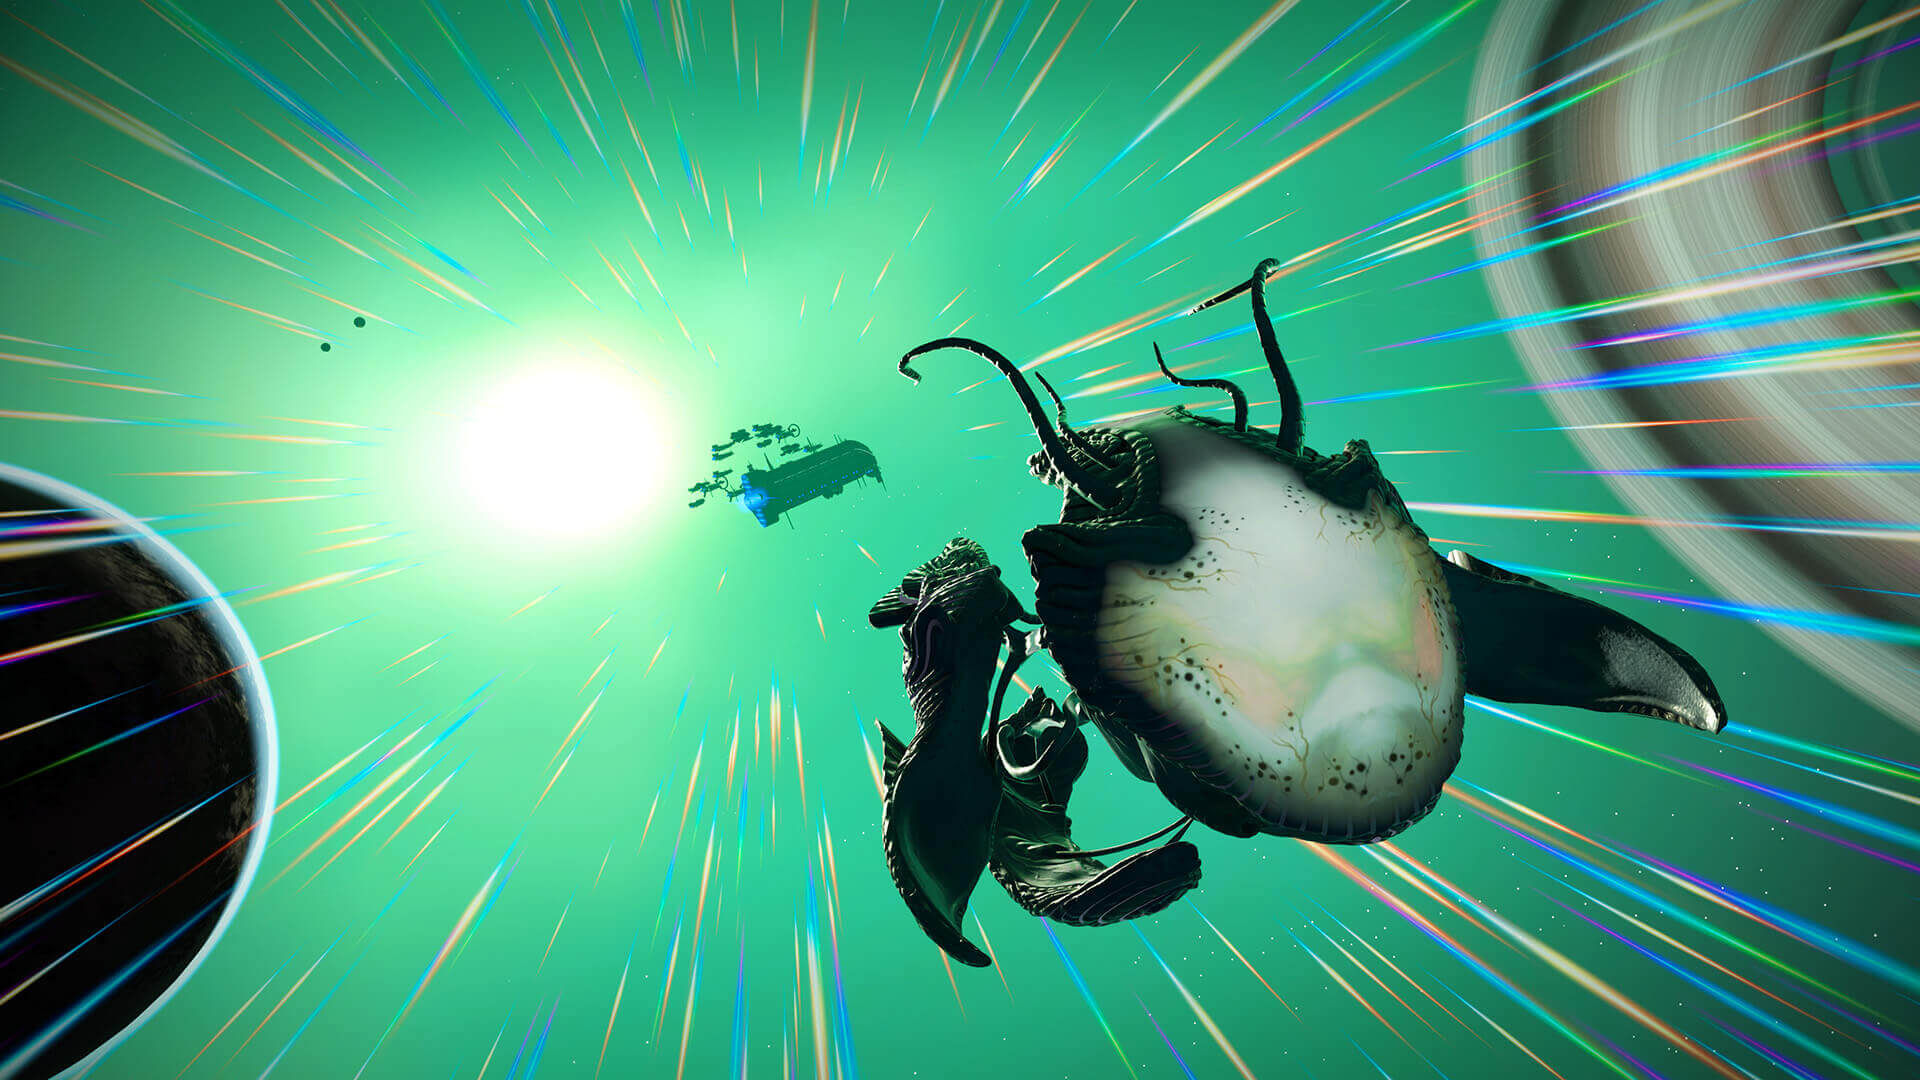 No Man's Sky adds living spaceships in latest update